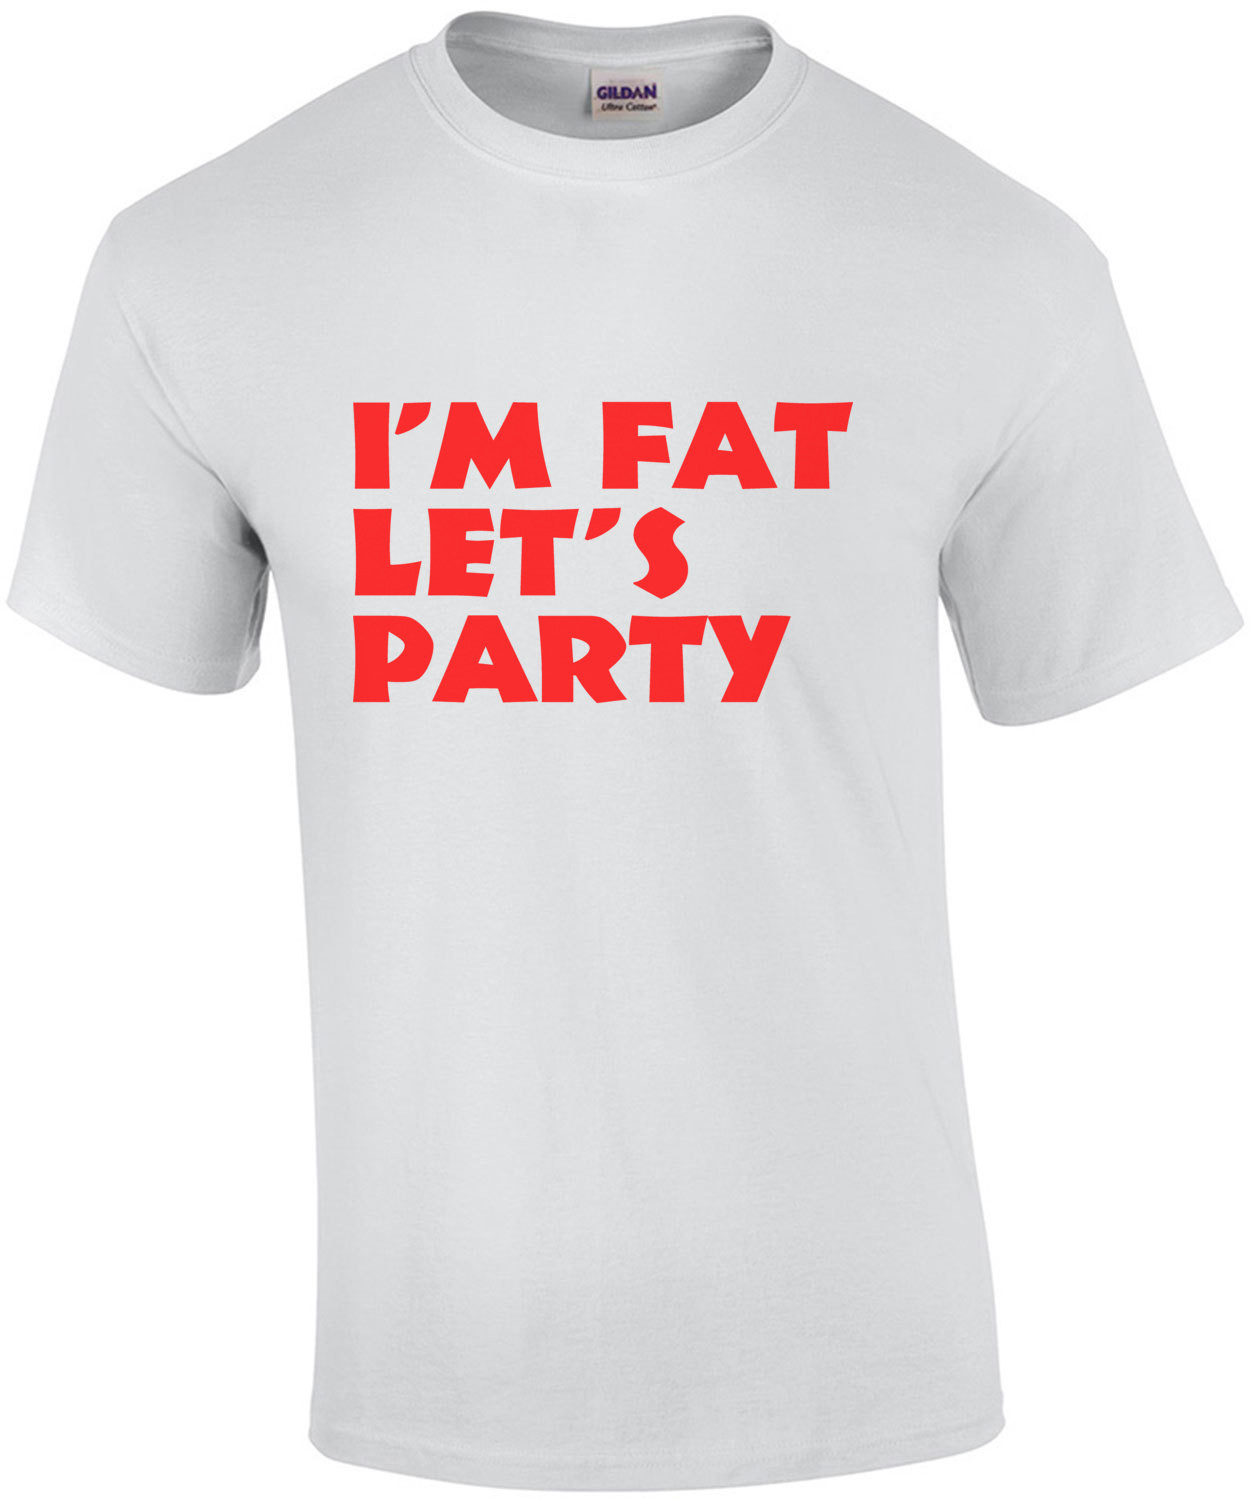 I'm Fat, Let's Party Funny Shirt